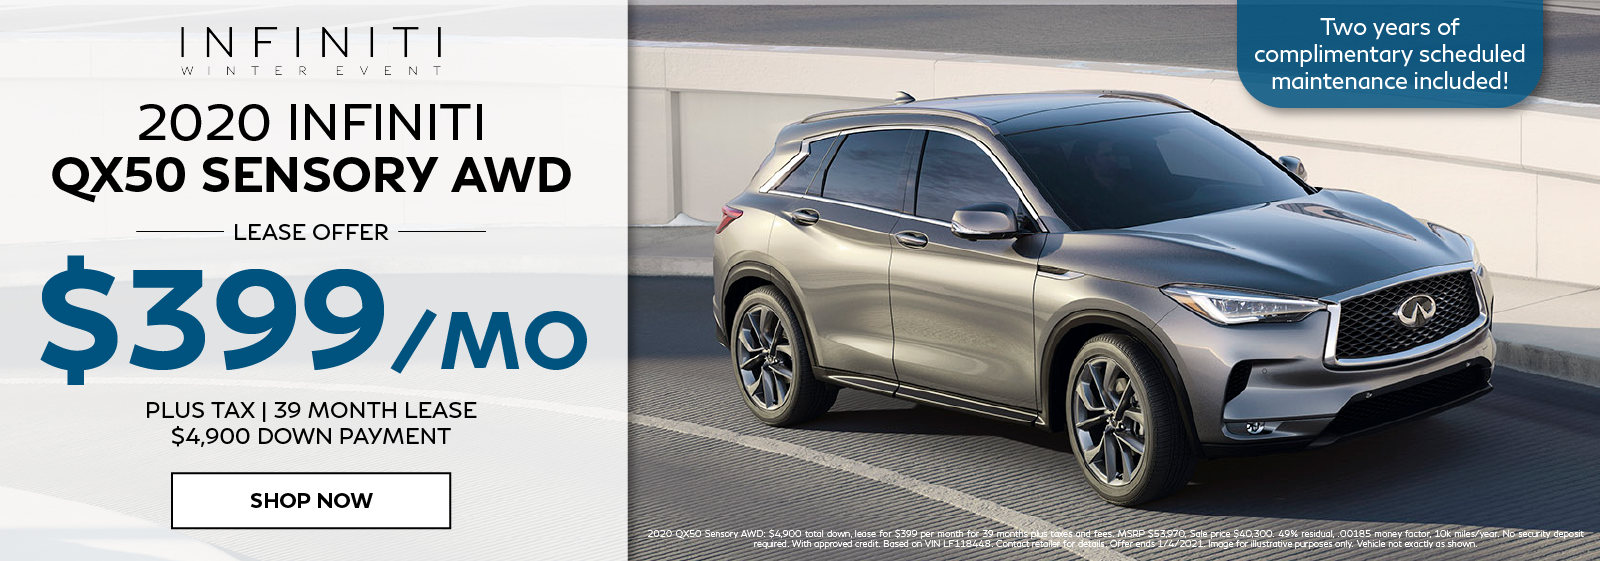 Well-qualified lessees lease a new 2020 QX50 Sensory for $399 per month for 39 months plus get two years of complimentary scheduled maintenance. Click to shop now.